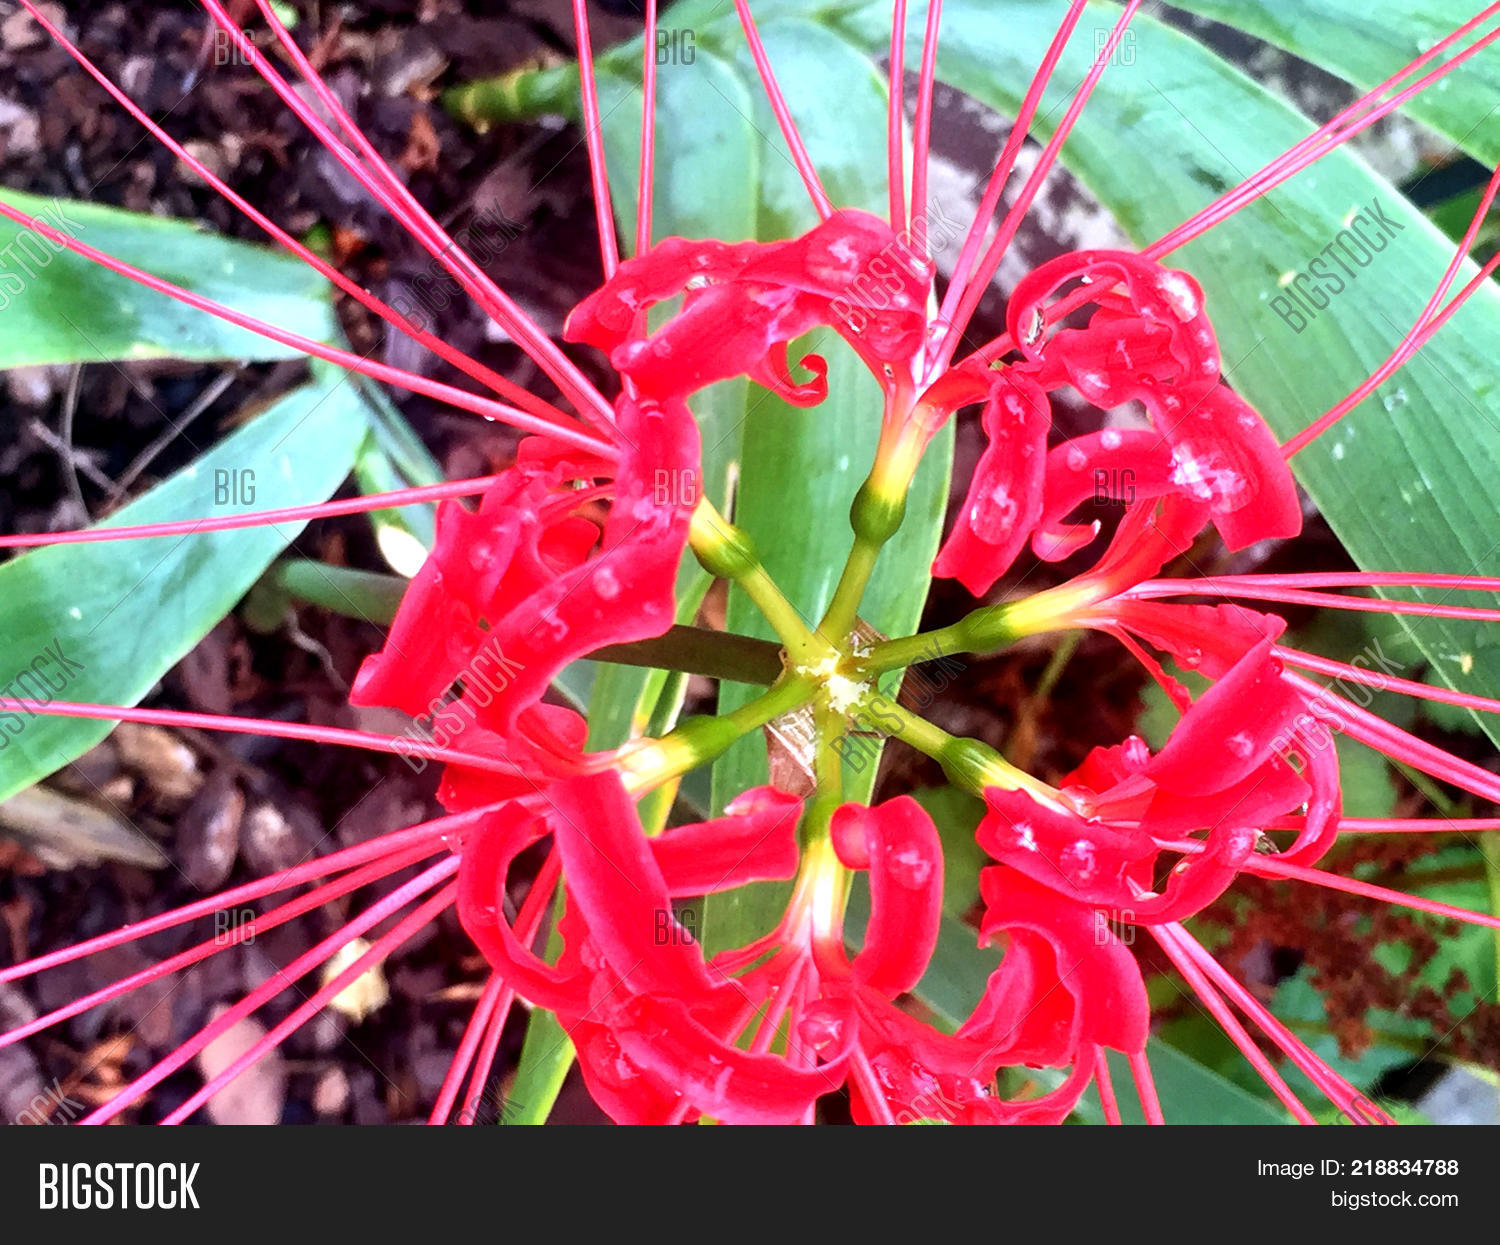 Tropical red spider image photo free trial bigstock tropical red spider lily flower lycoris radiata izmirmasajfo